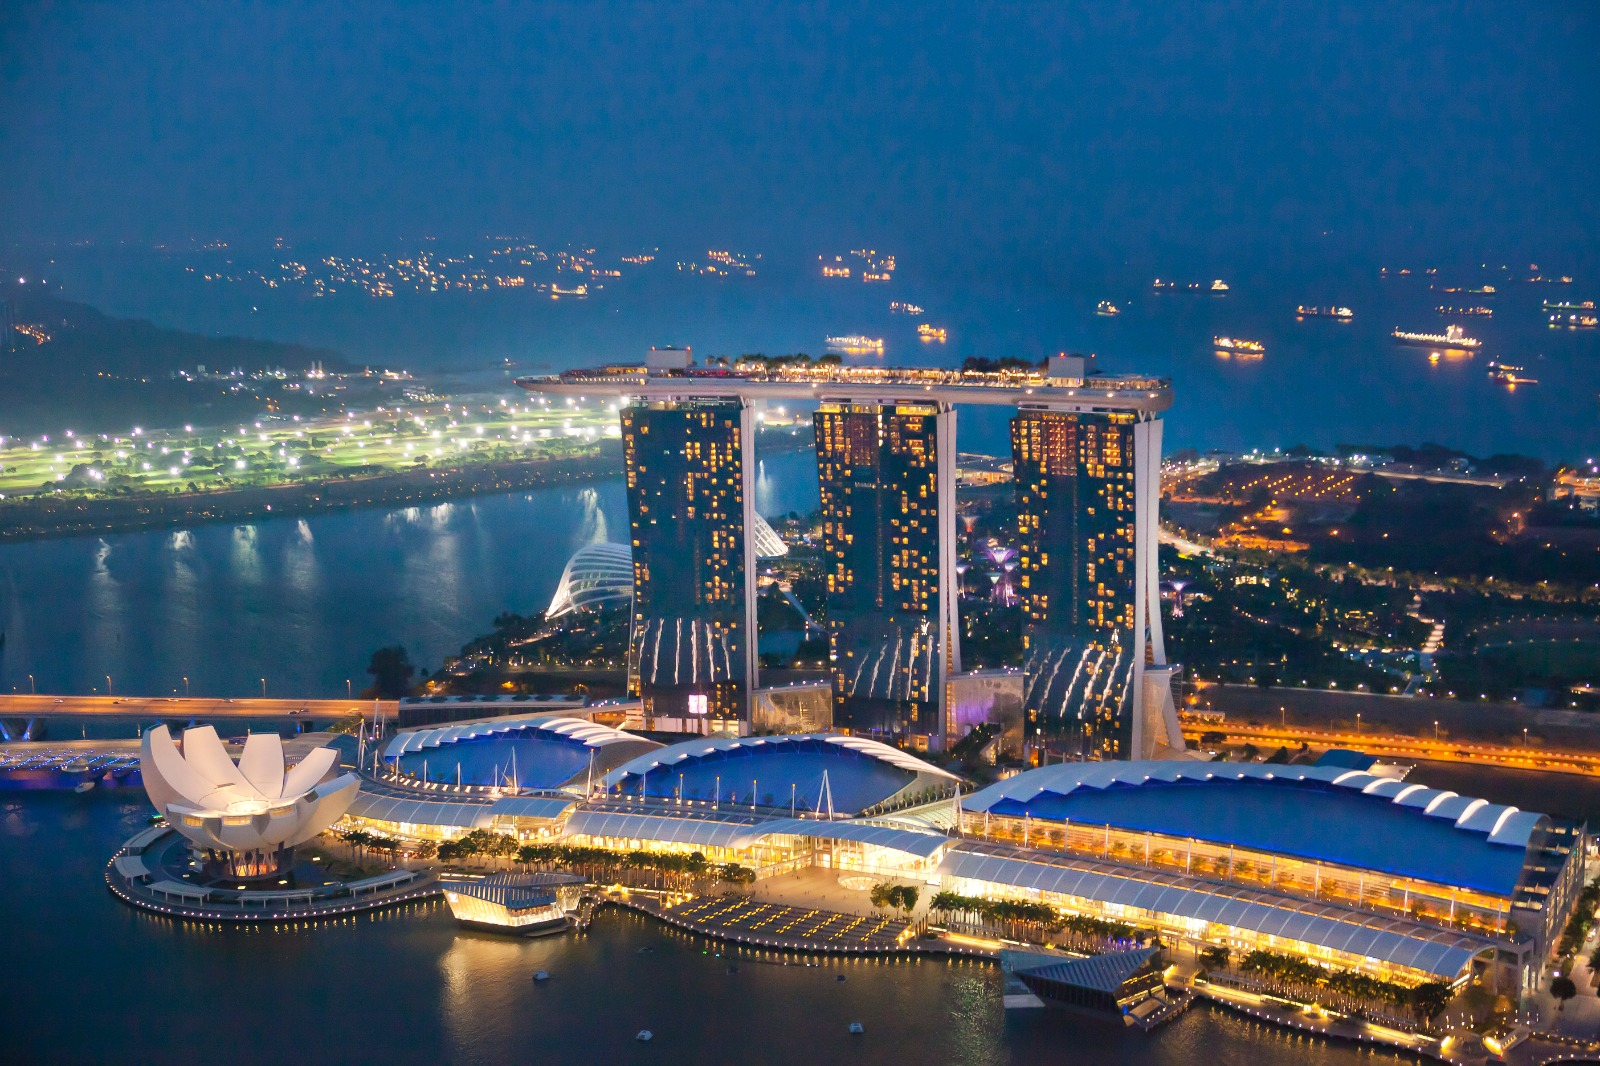 Singapore 1-Altitude of Marina Bay Sands & its surrounding areas STB